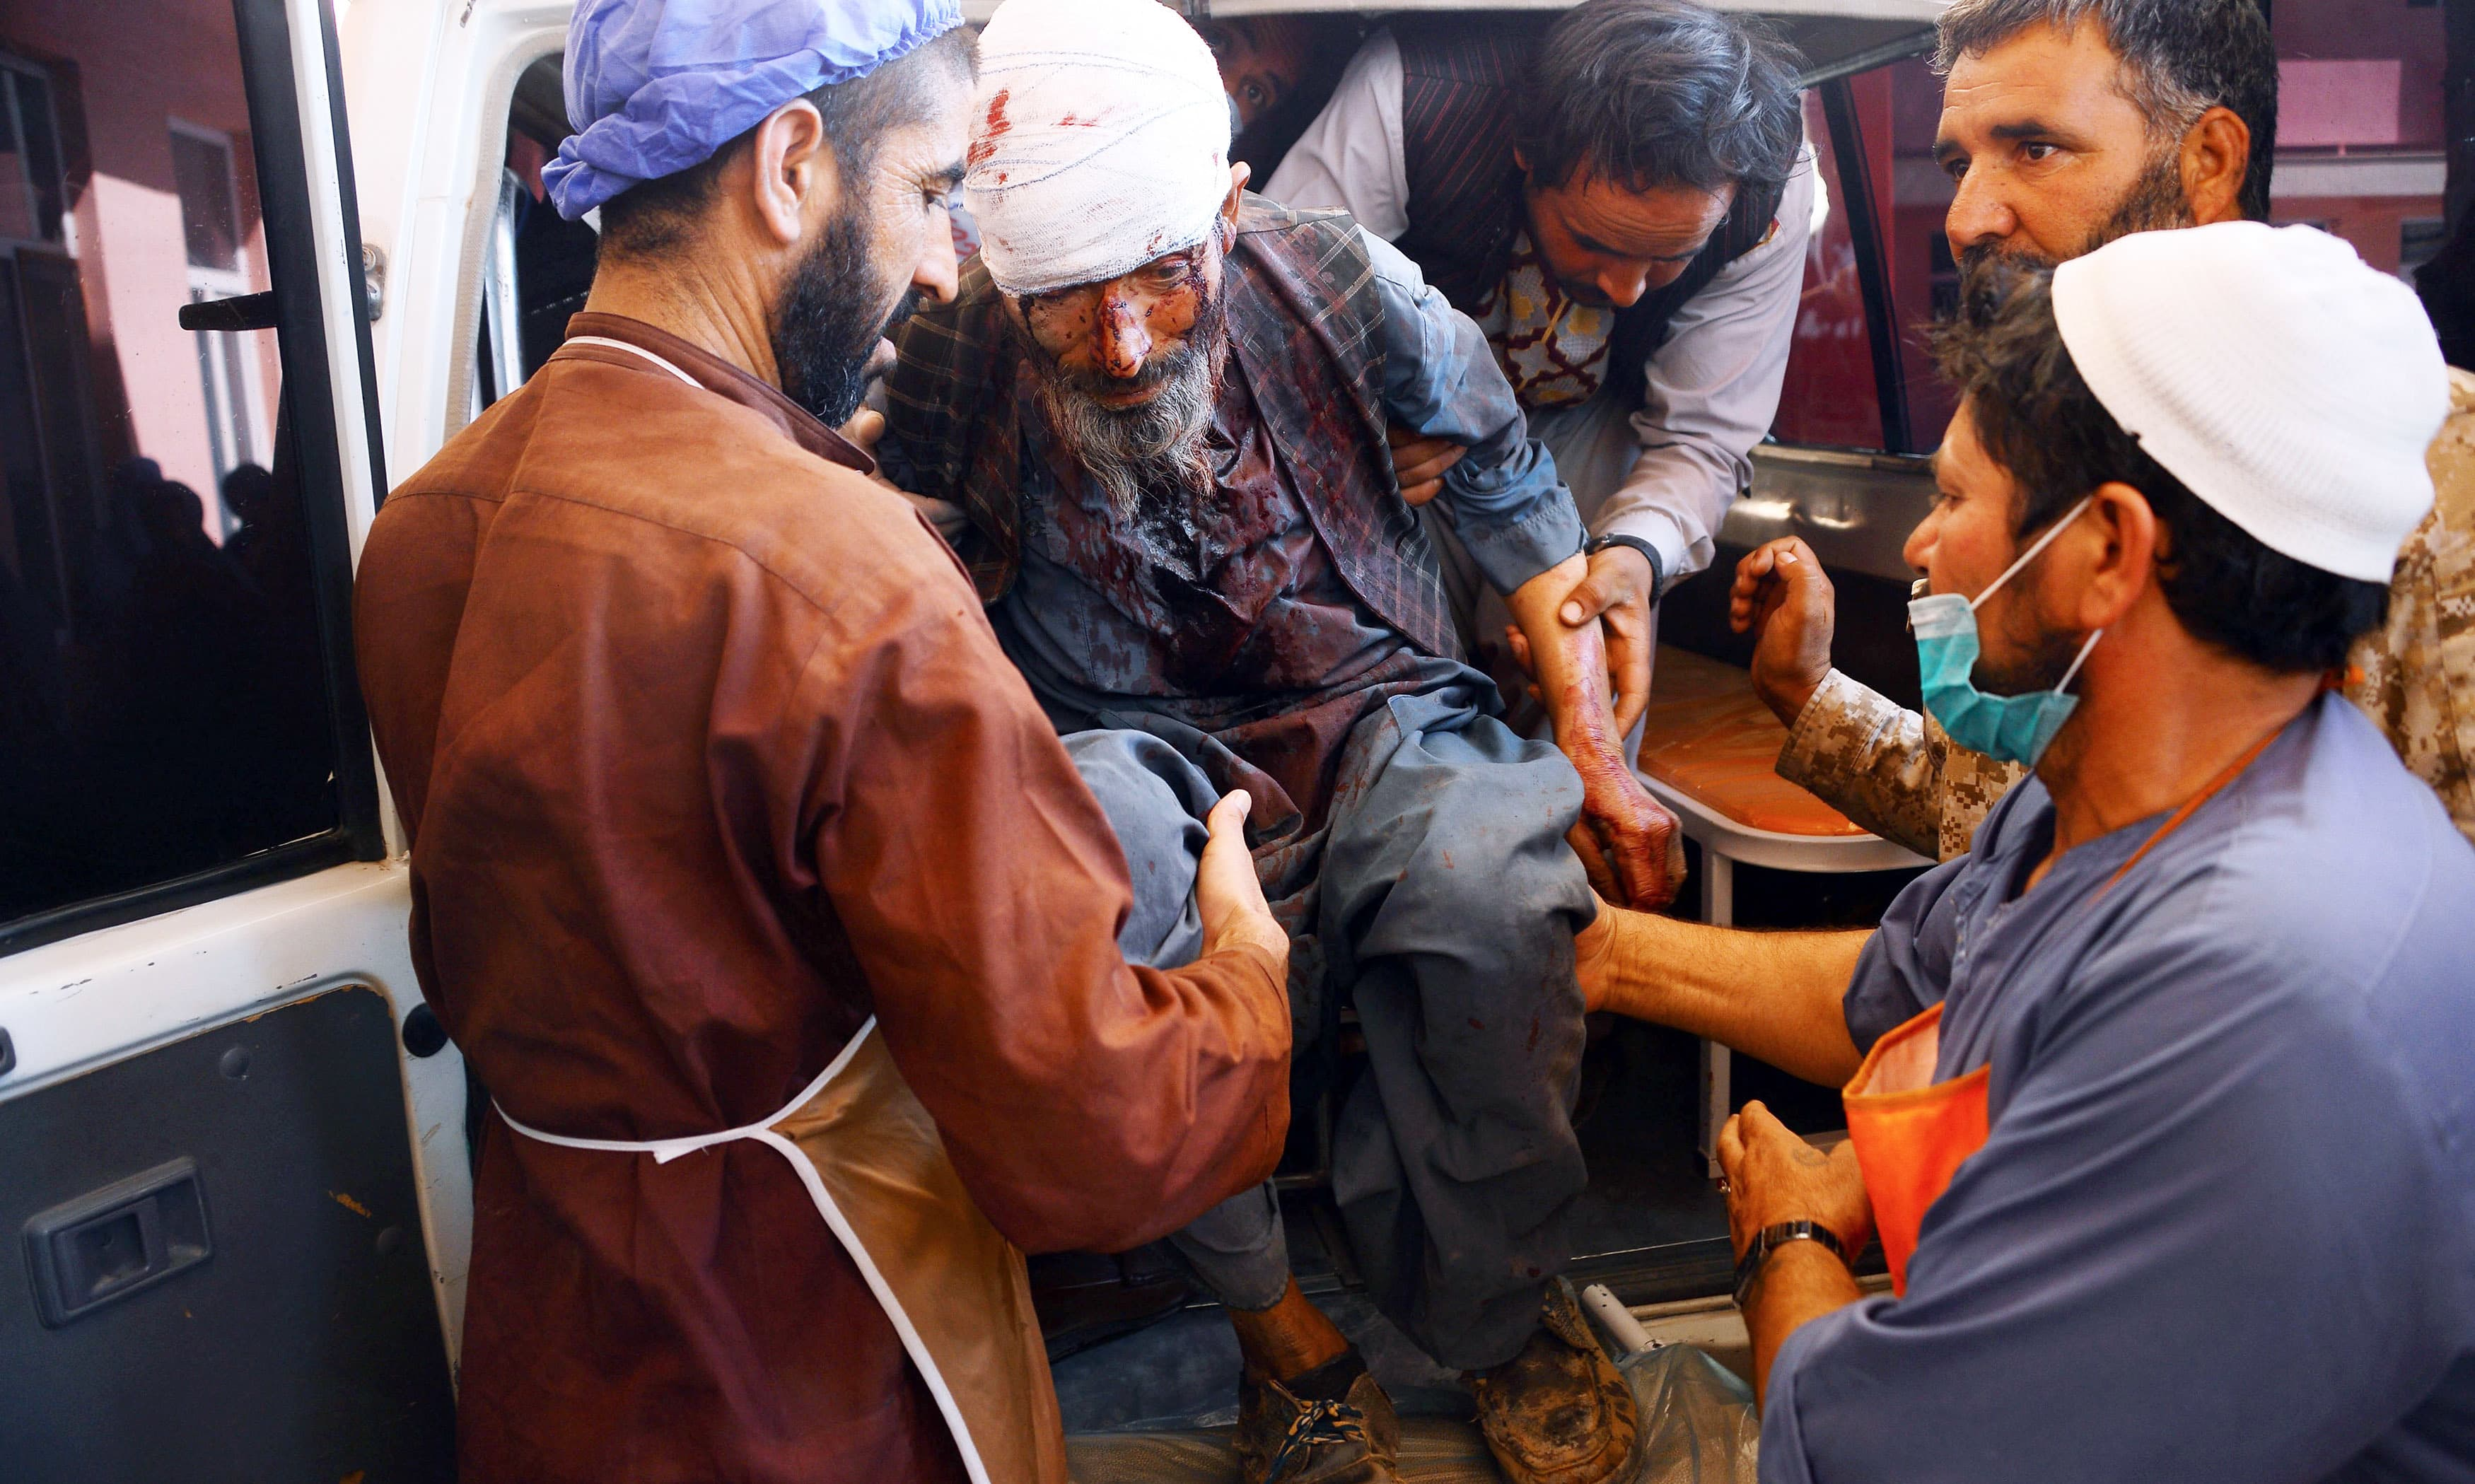 A wounded Afghan man is brought to a hospital after roadside bomb hit a passenger bus in Herat. —AFP